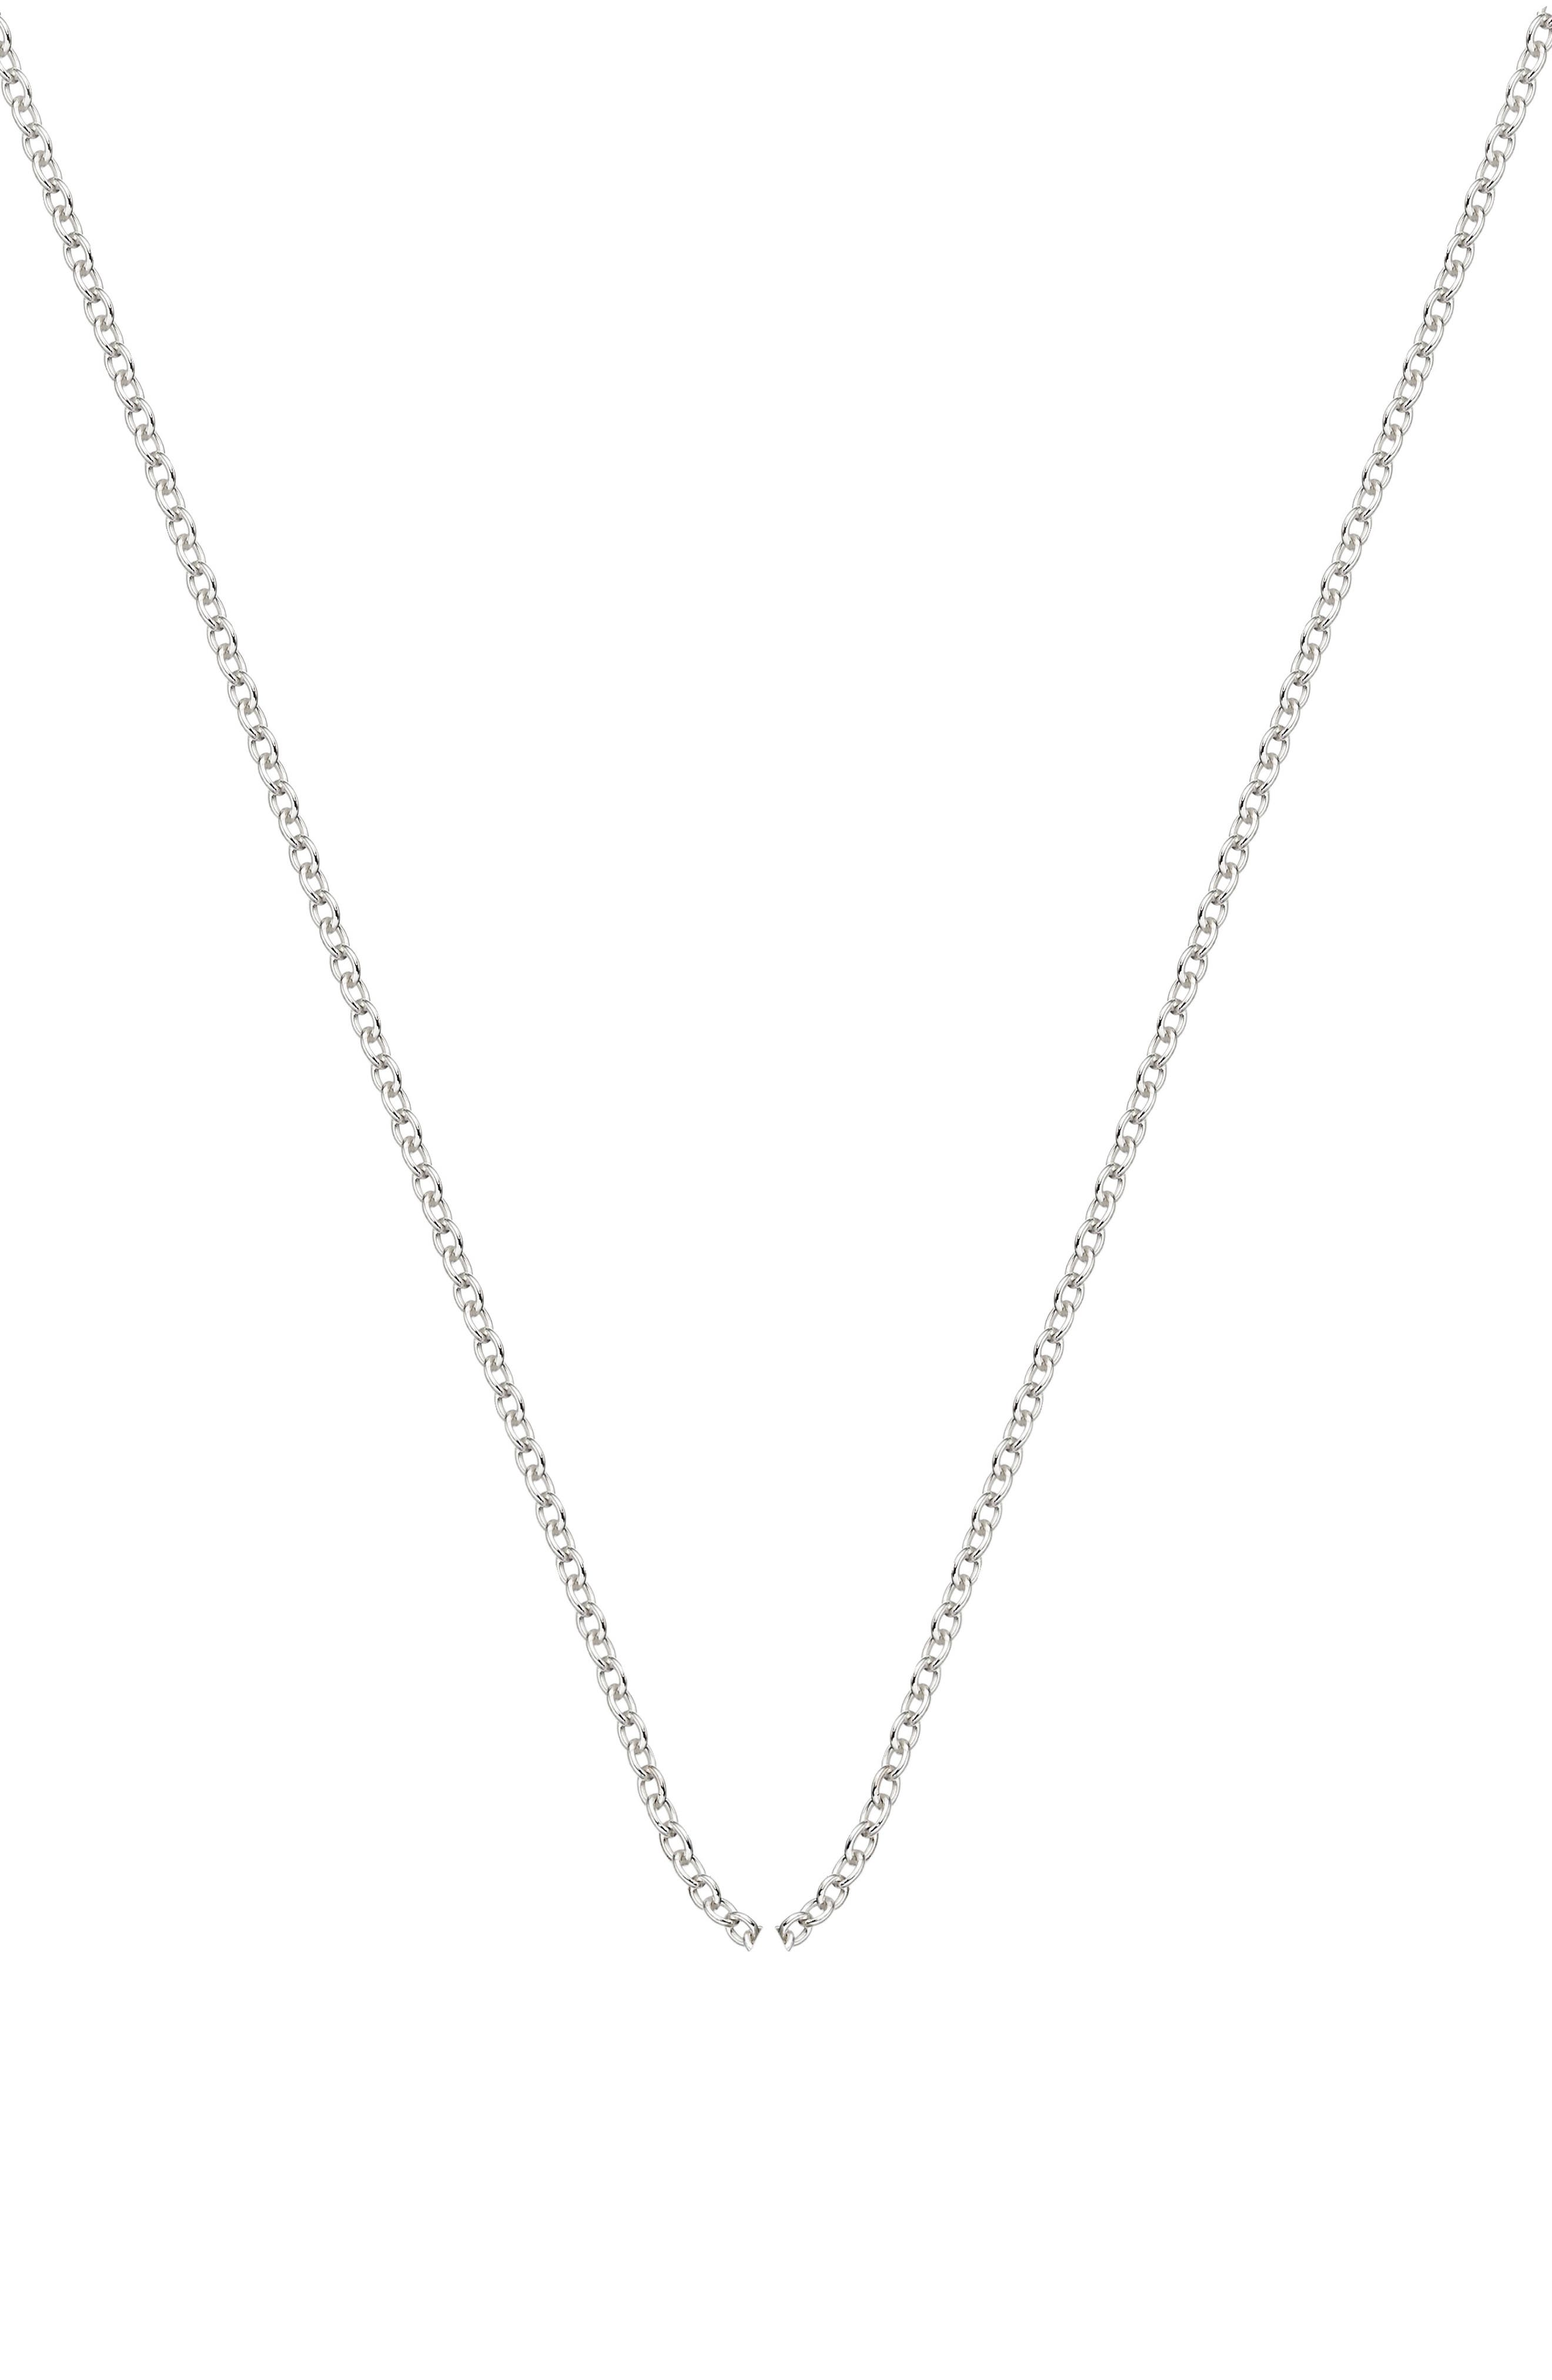 Rolo Chain Necklace,                             Main thumbnail 1, color,                             SILVER